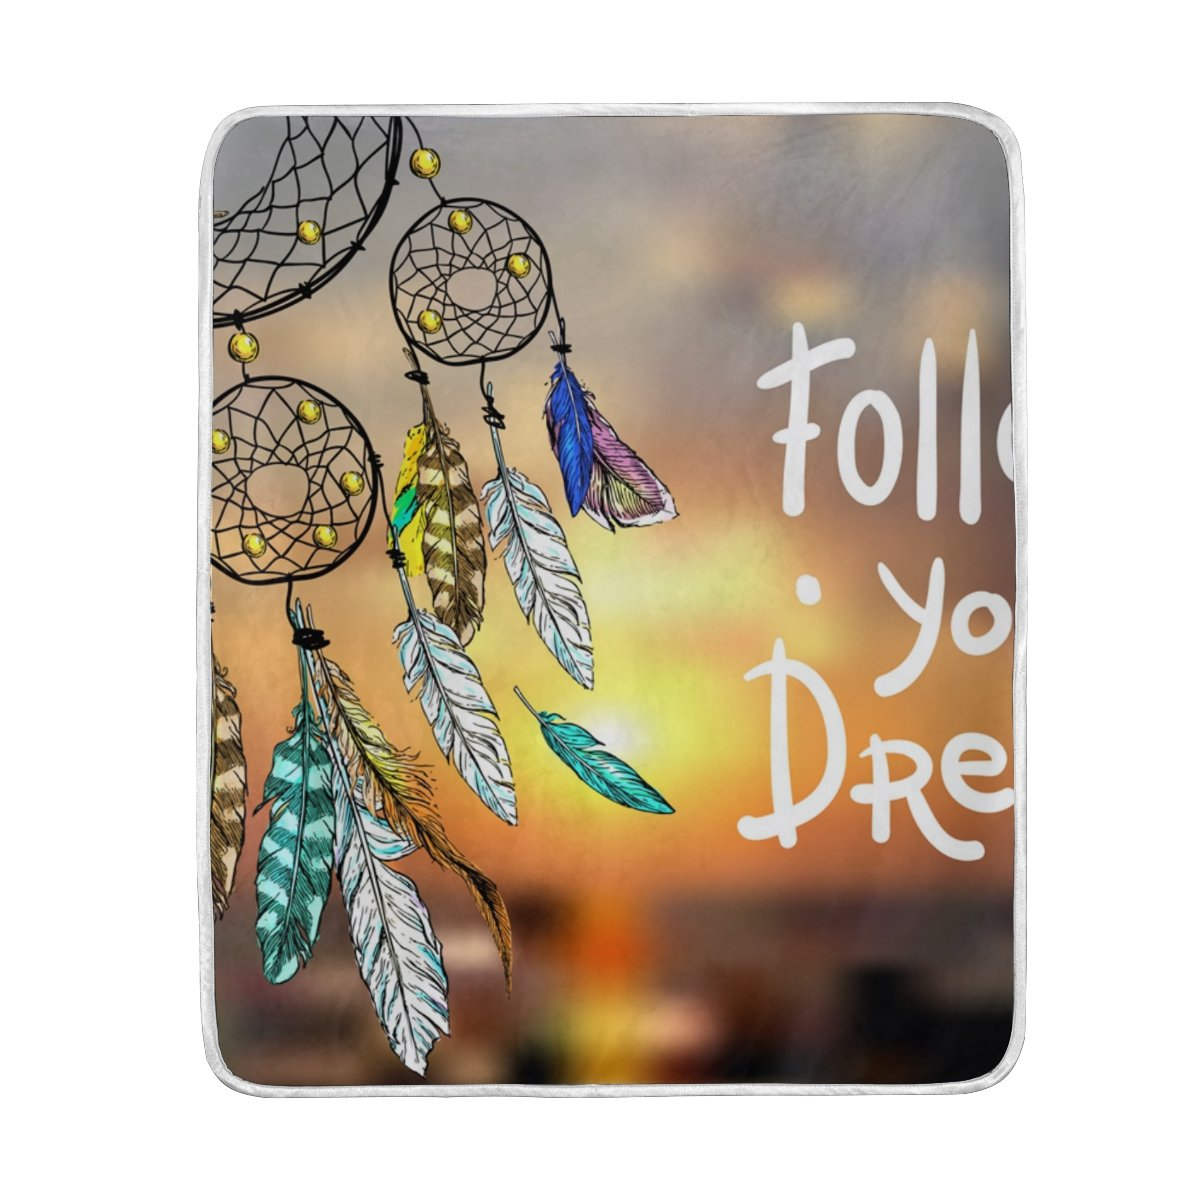 My Little Nest Follow Your Dream Beautiful Catcher Soft Throw Blanket Lightweight MicrofiberCozy Warm Blankets Everyday Use for Bed Couch Sofa 50'' x 60''